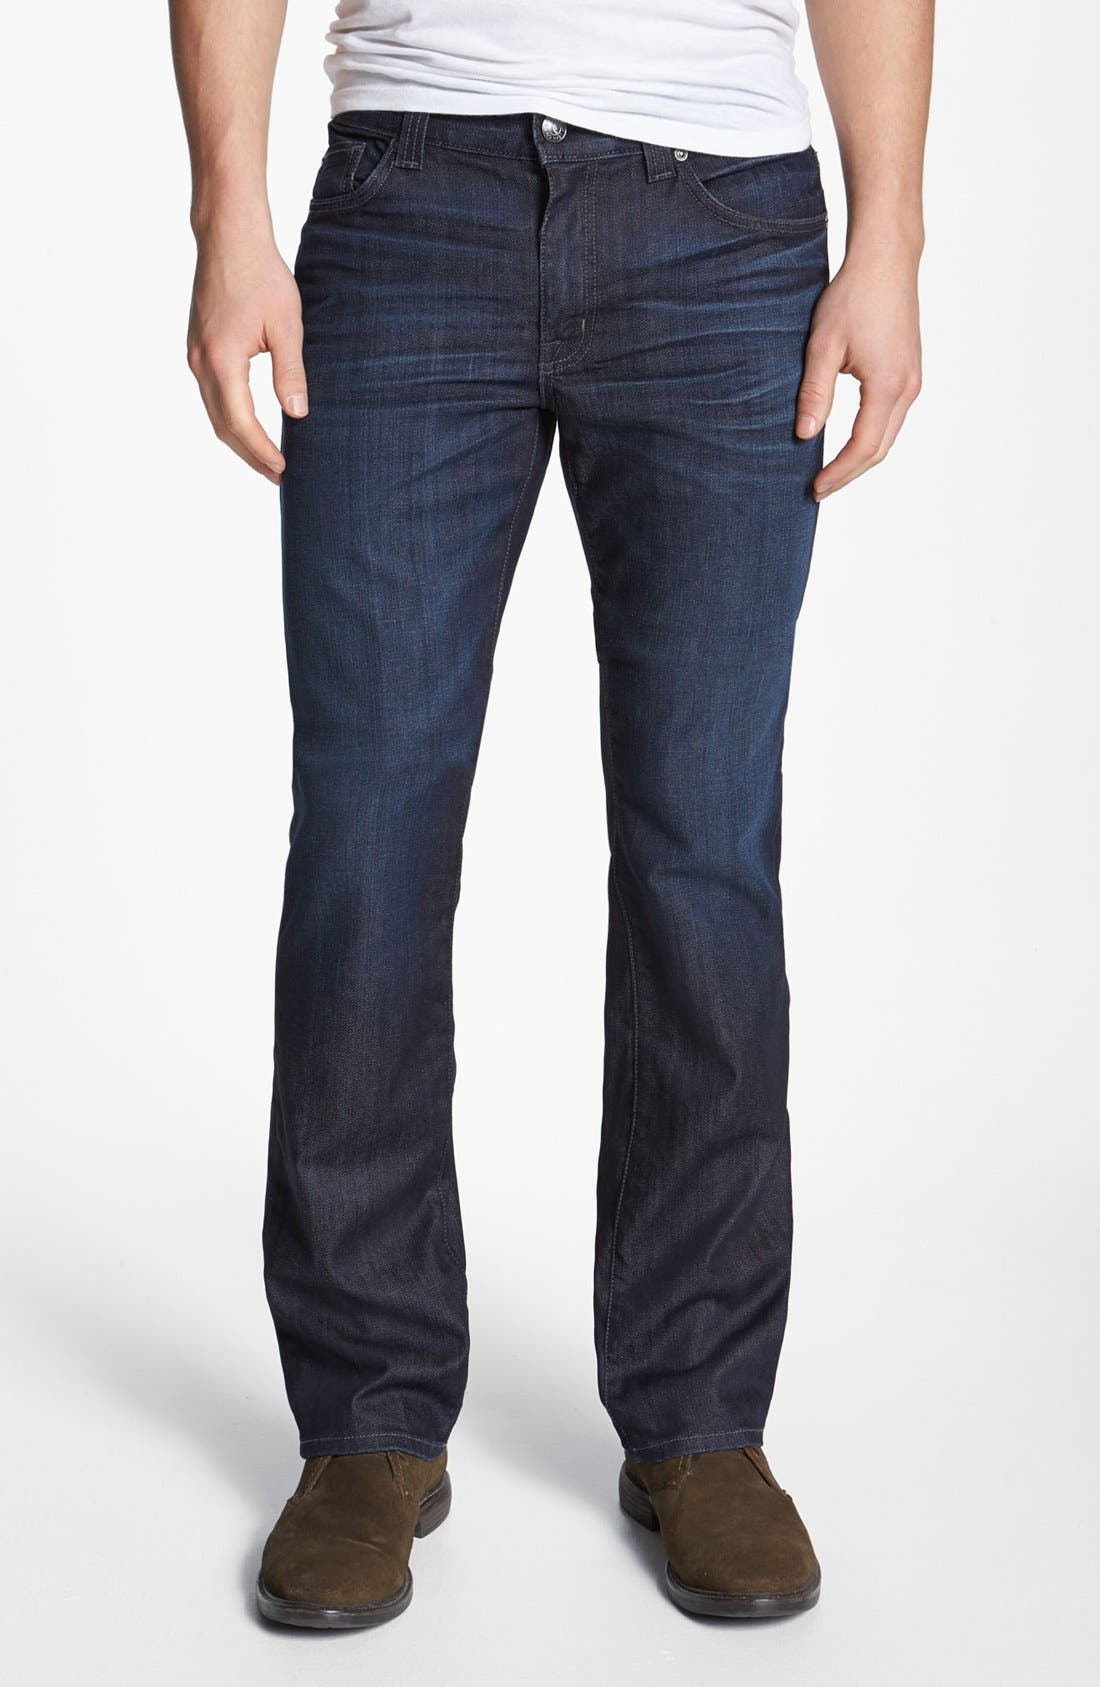 Alternate Image 1 Selected - Fidelity Denim 'Impala' Straight Leg Jeans (Lennon Dark Wash)